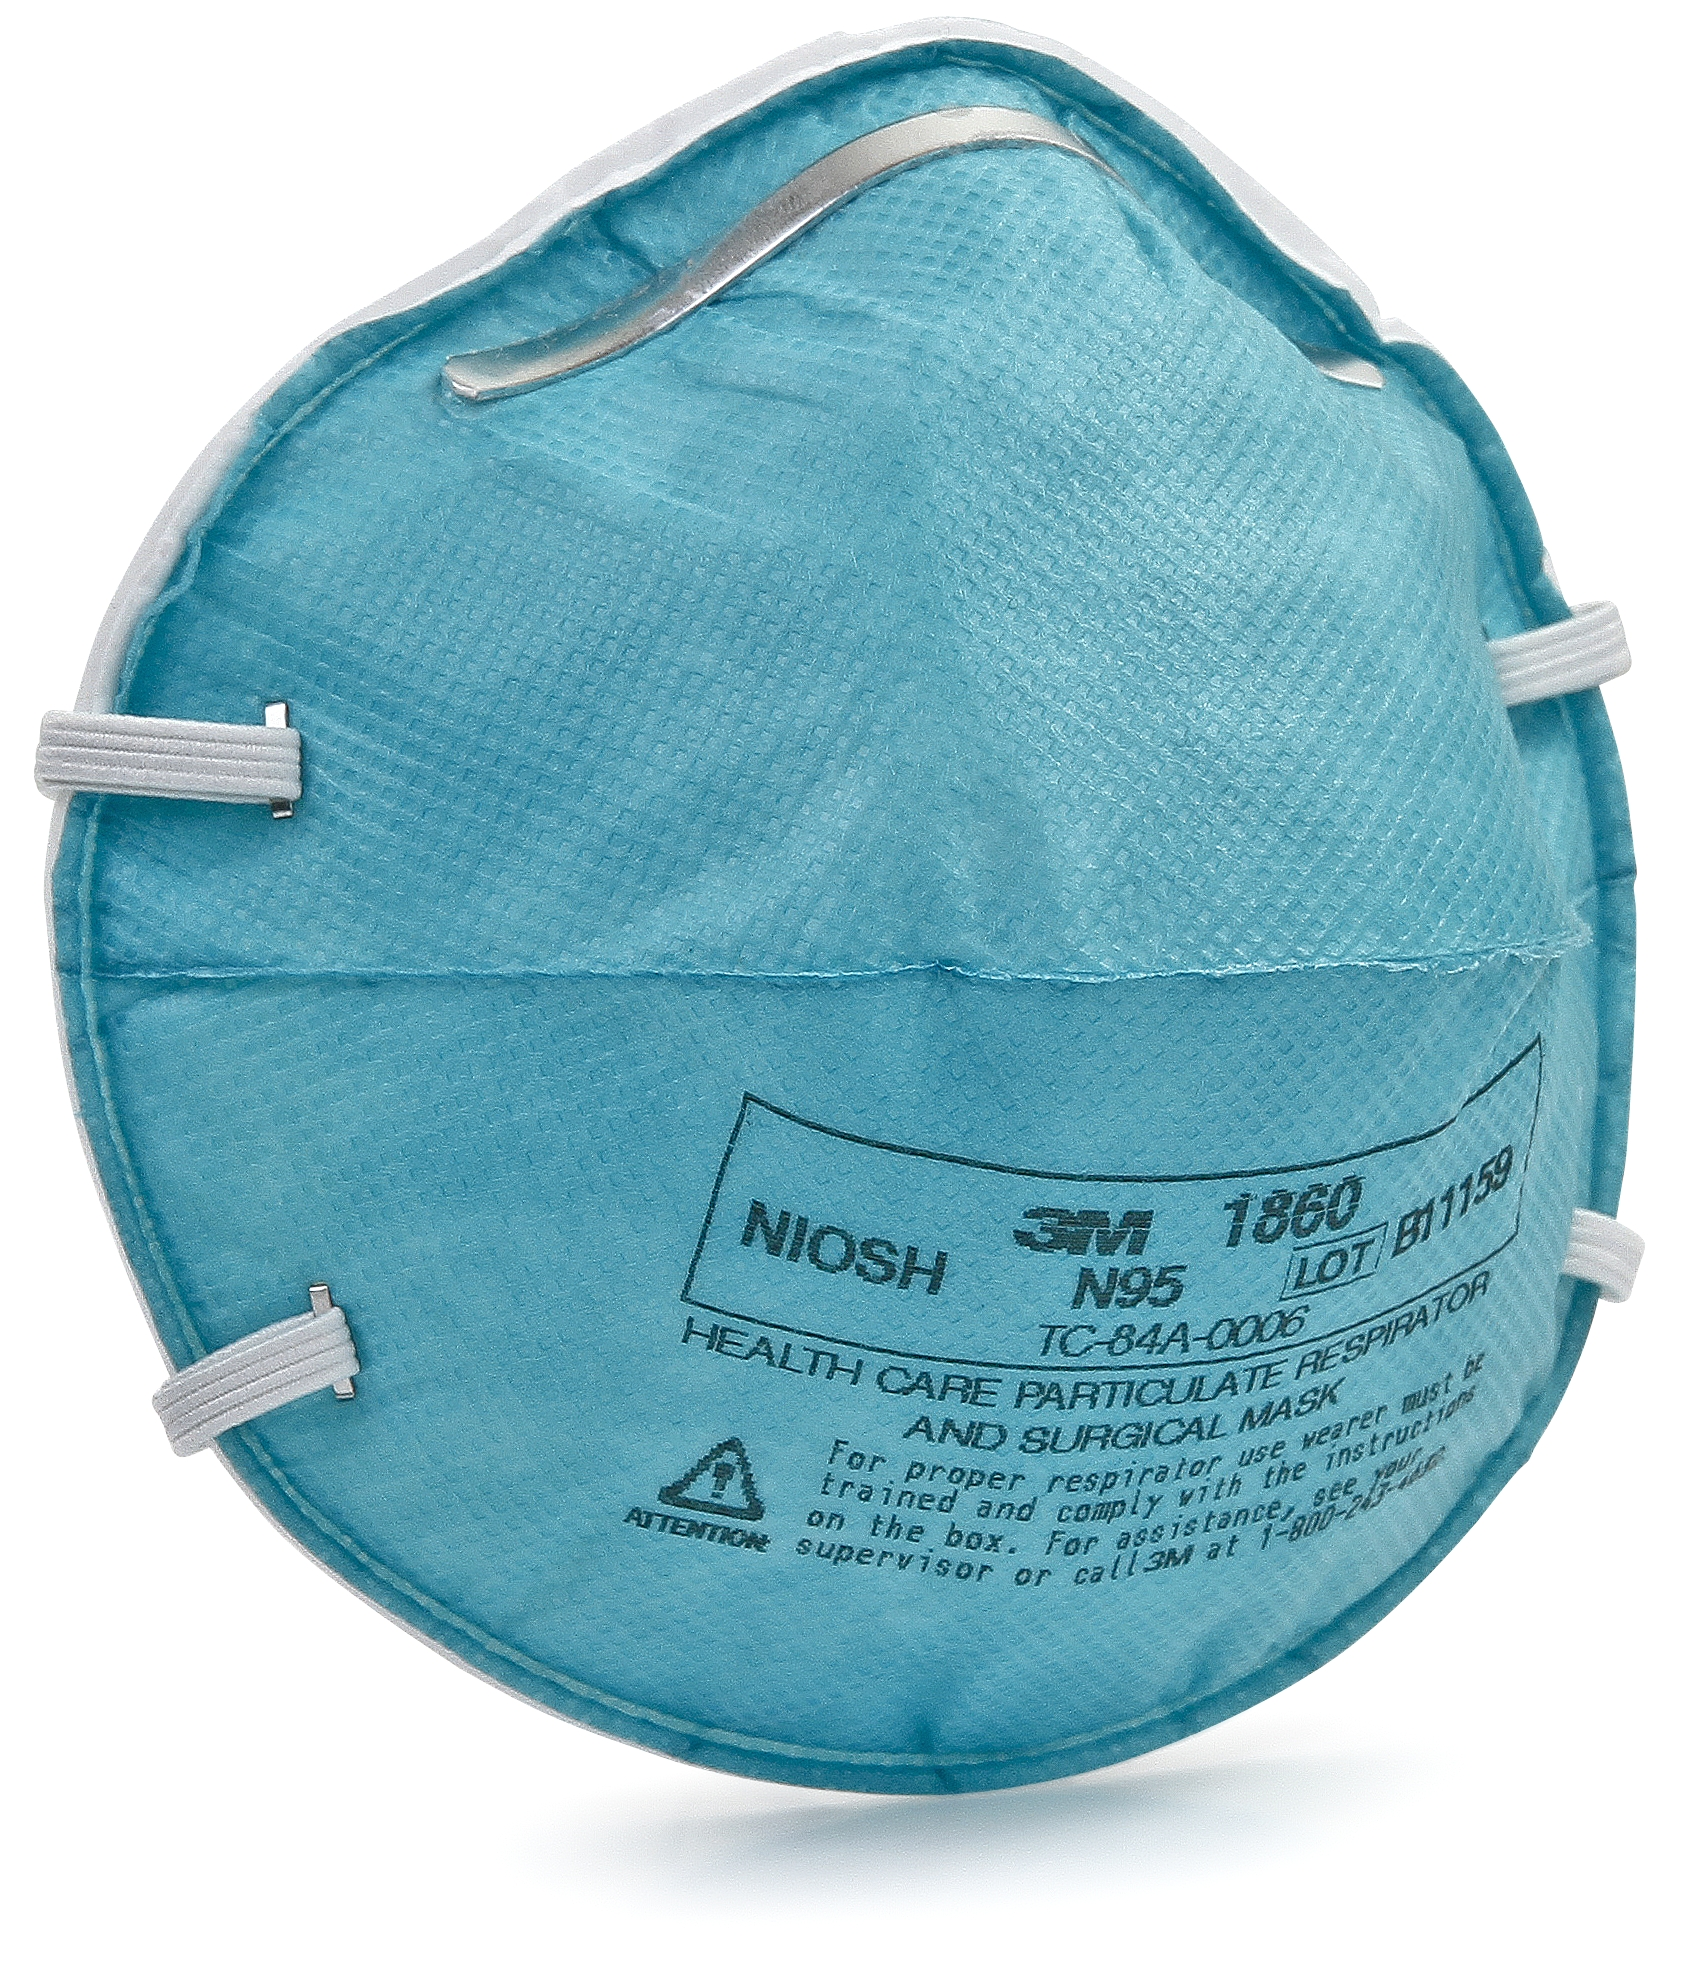 3M Particulate Respirator / Surgical Mask N95 Cup Elastic Strap One Size Fits Most Teal, 1860 - Case of 120